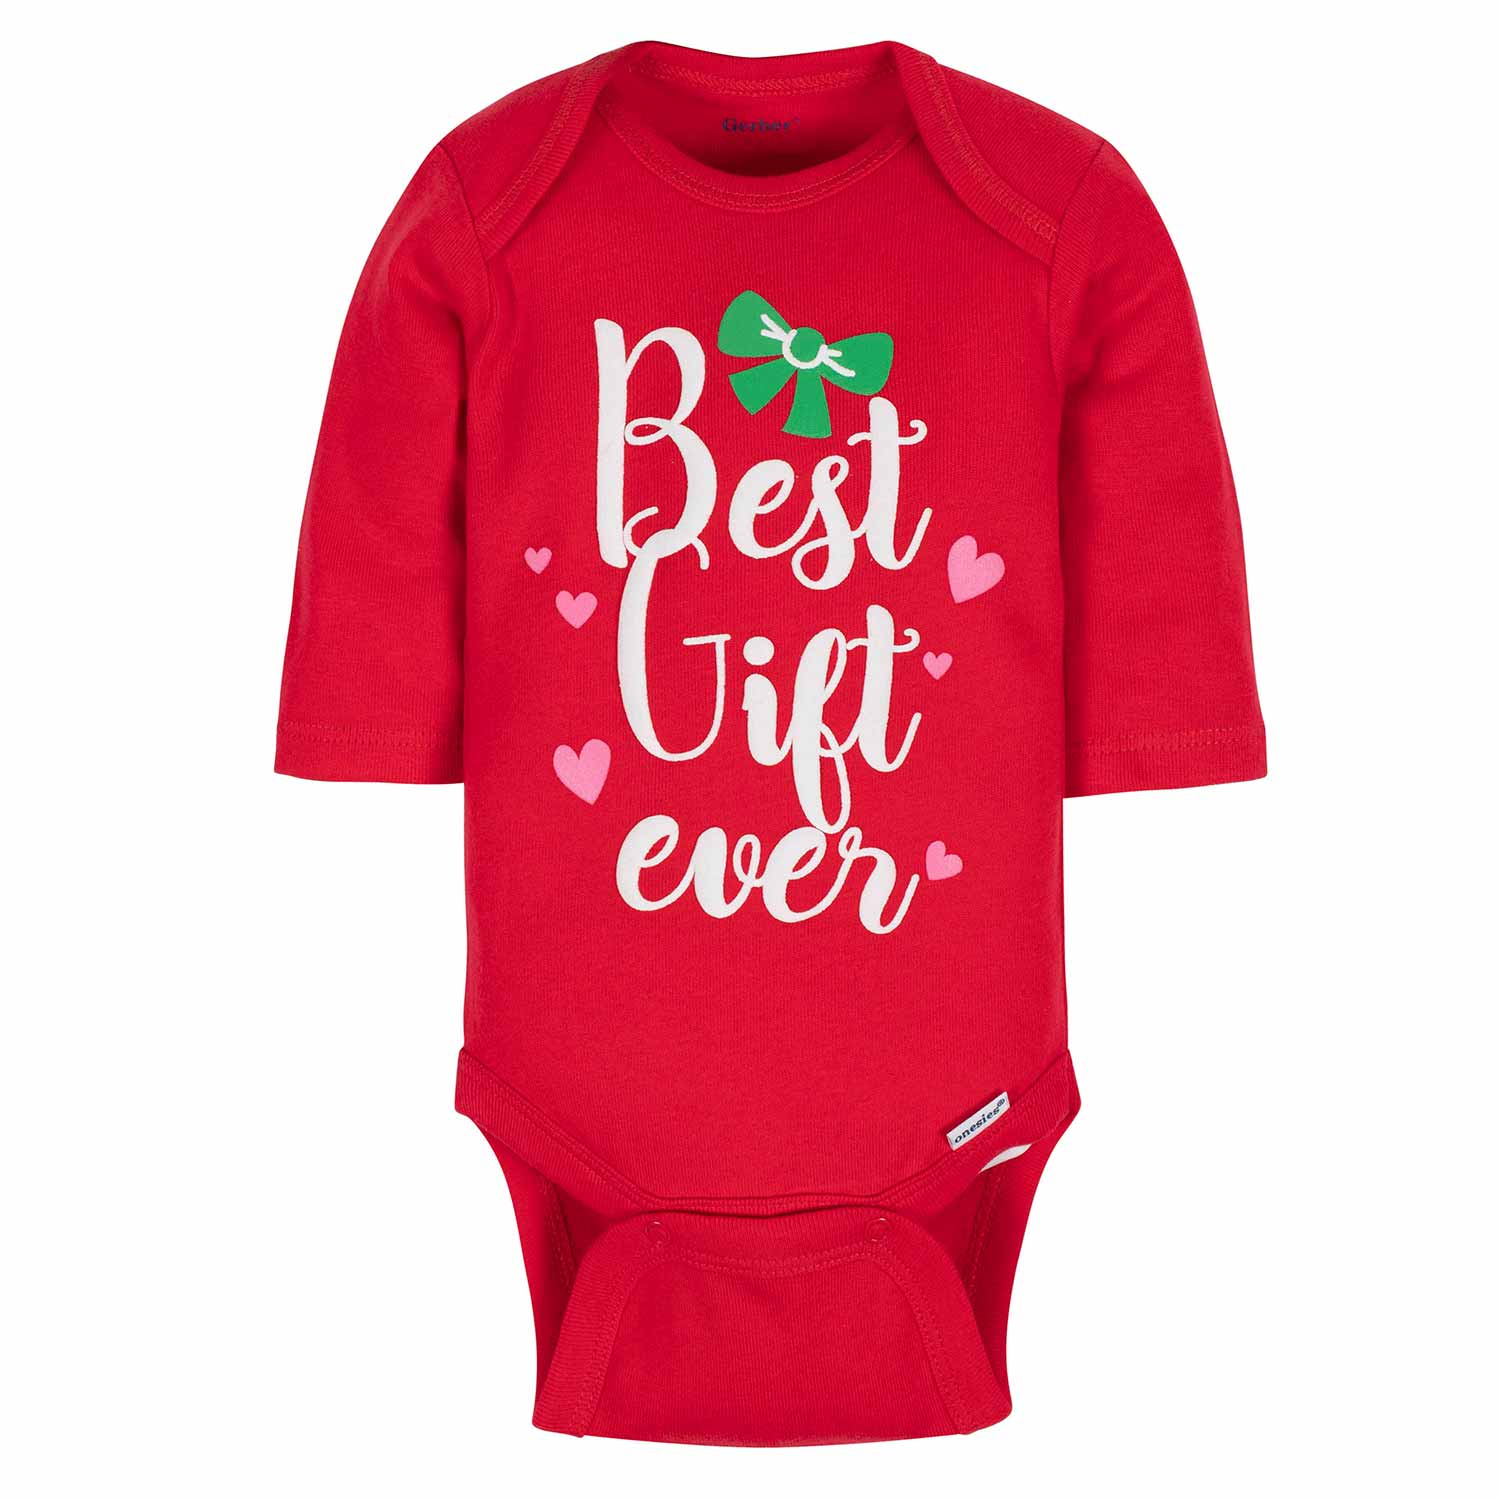 Gerber® 3-Pack Baby Girls Holiday Gift Long Sleeve Onesies® Bodysuits-Gerber Childrenswear